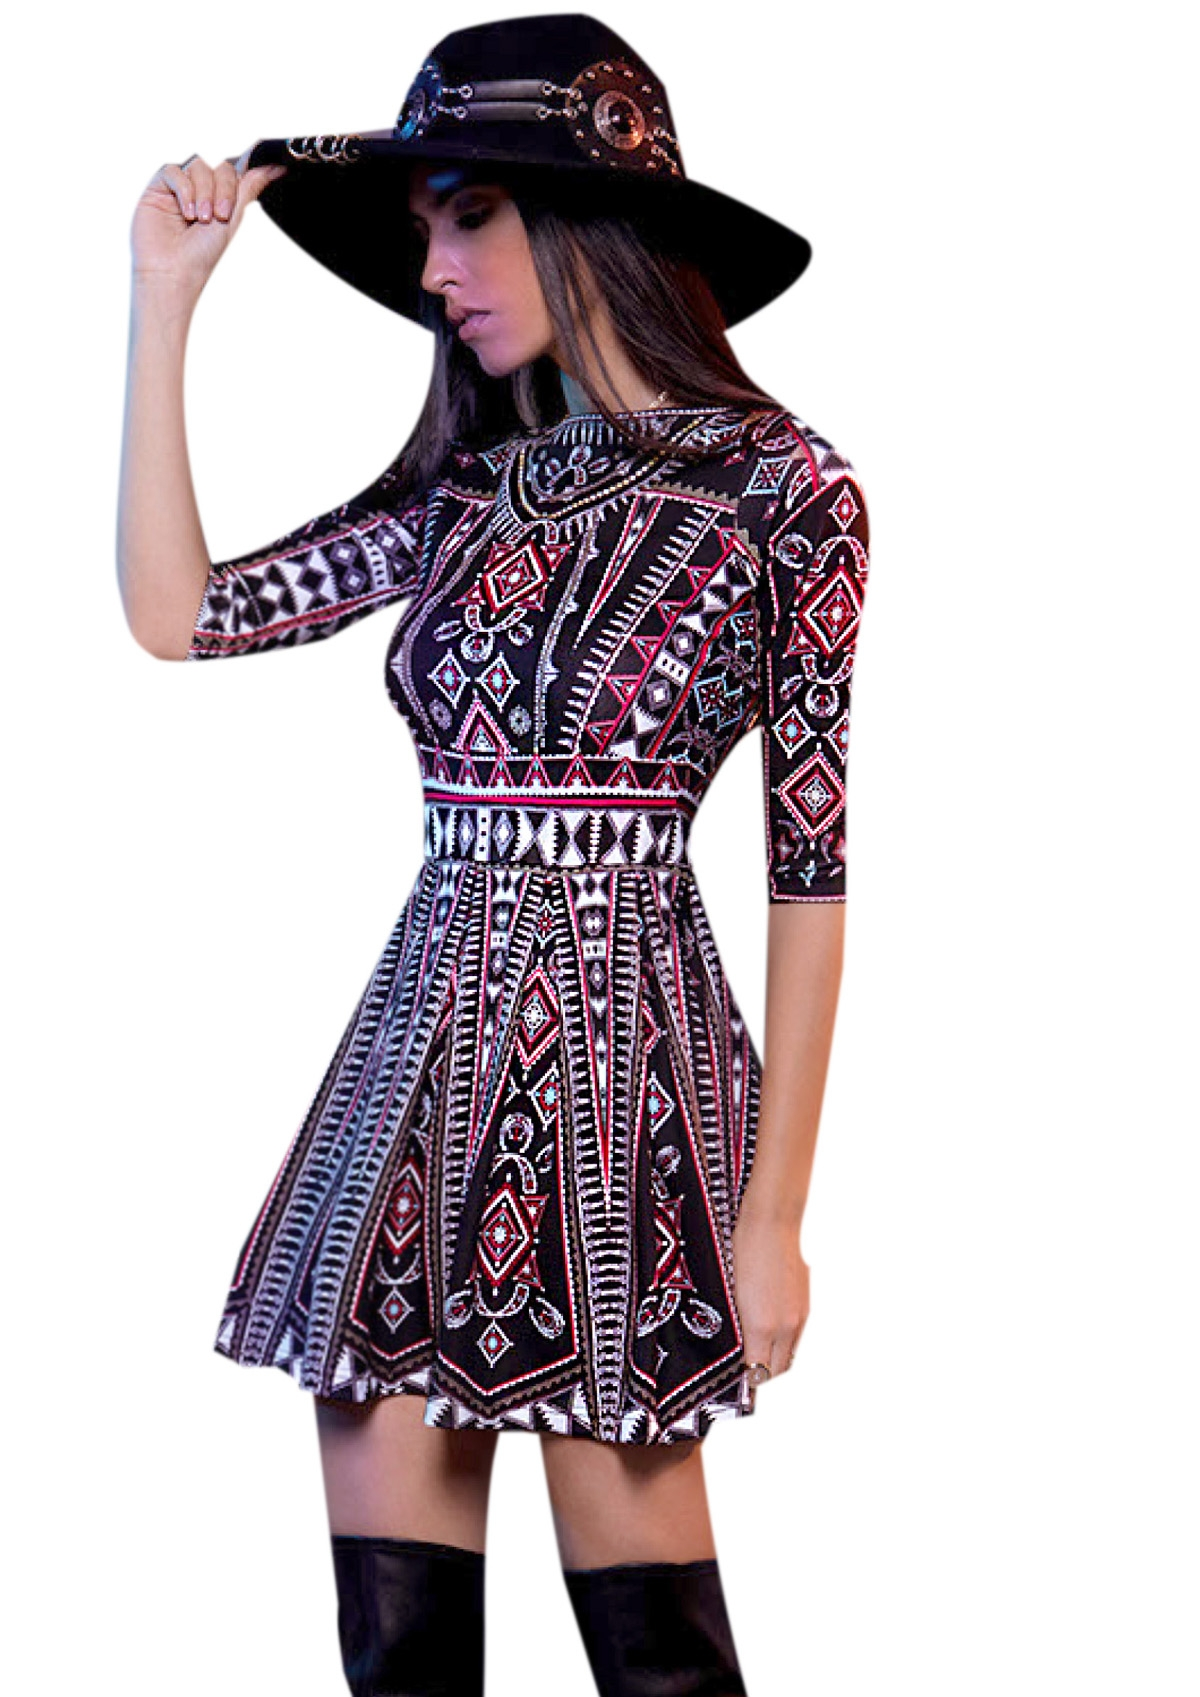 PEACE AND CHAOS FOLK LOVE DRESS - Abebablom Store 64fb824a4d1